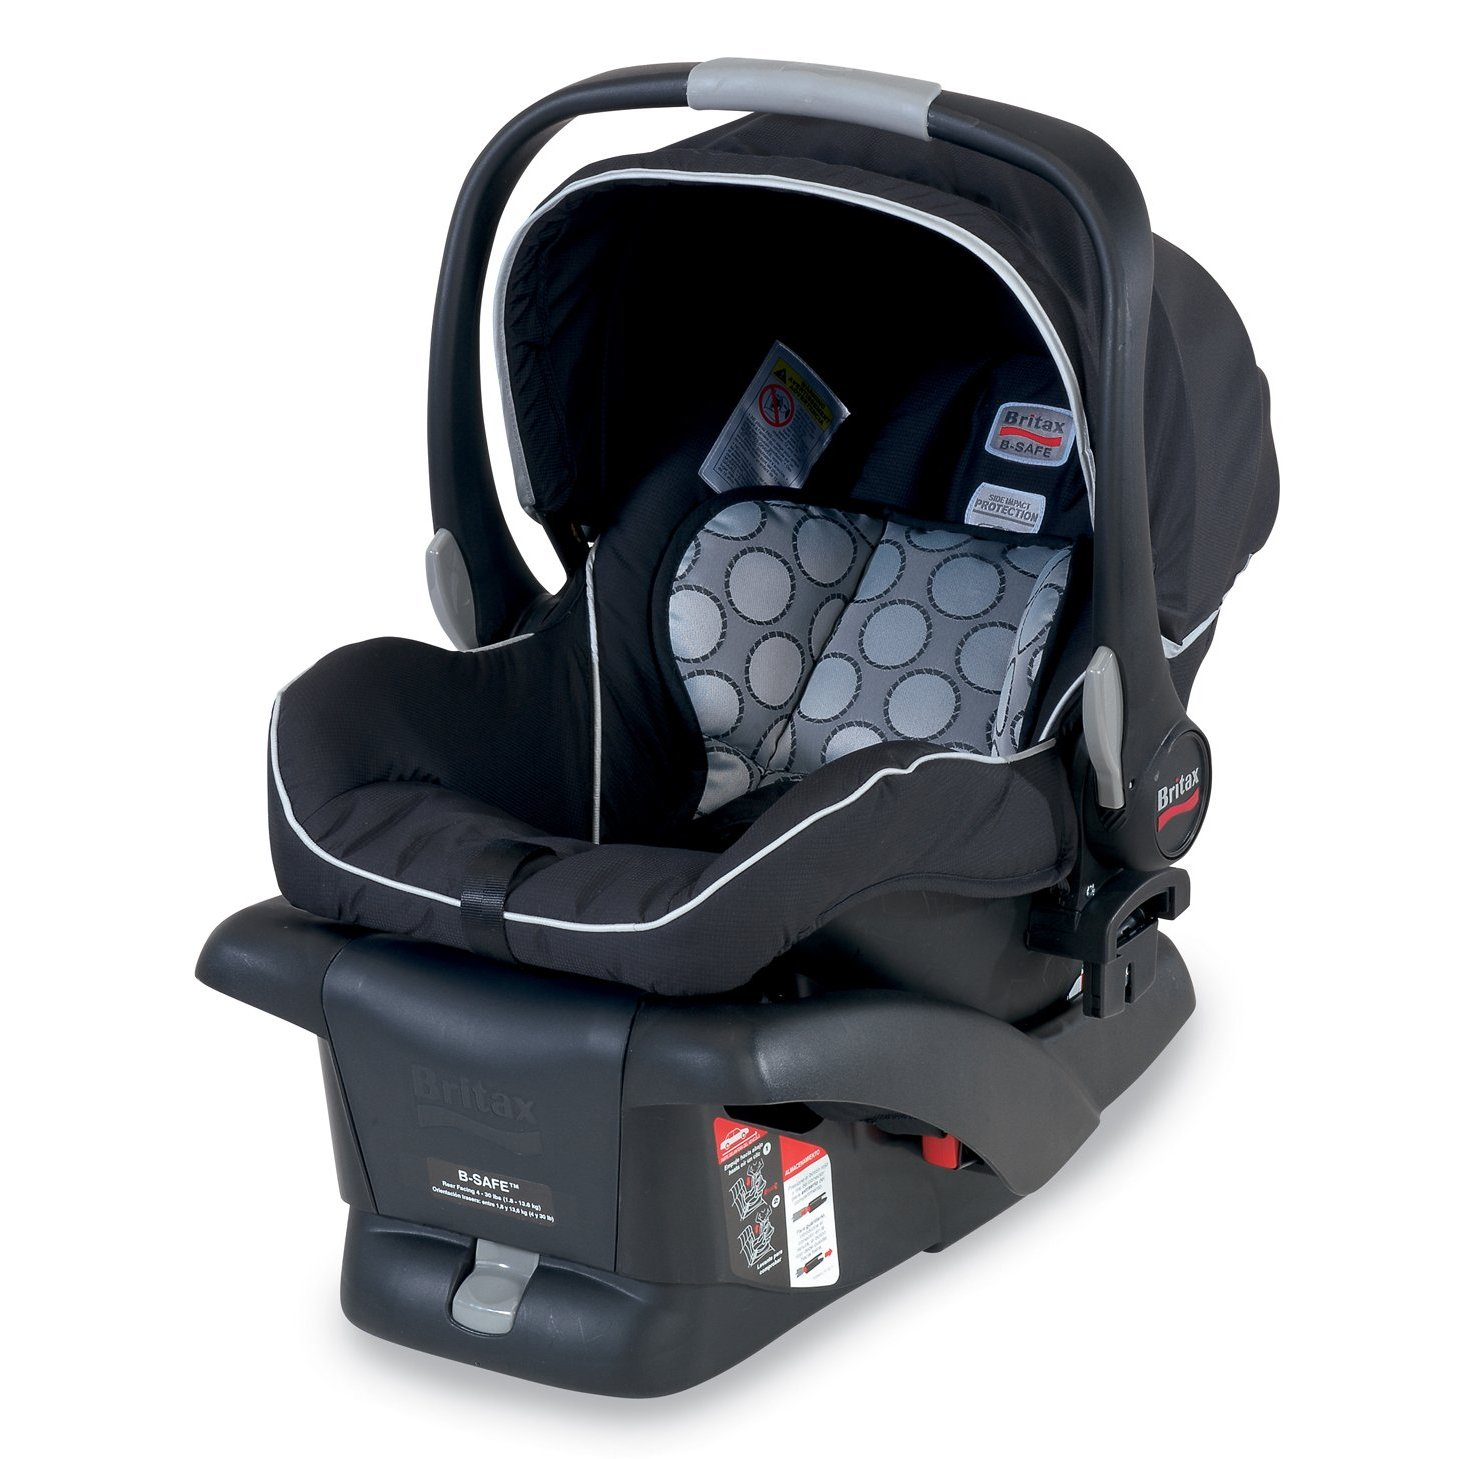 Best Infant Car Seat Brand